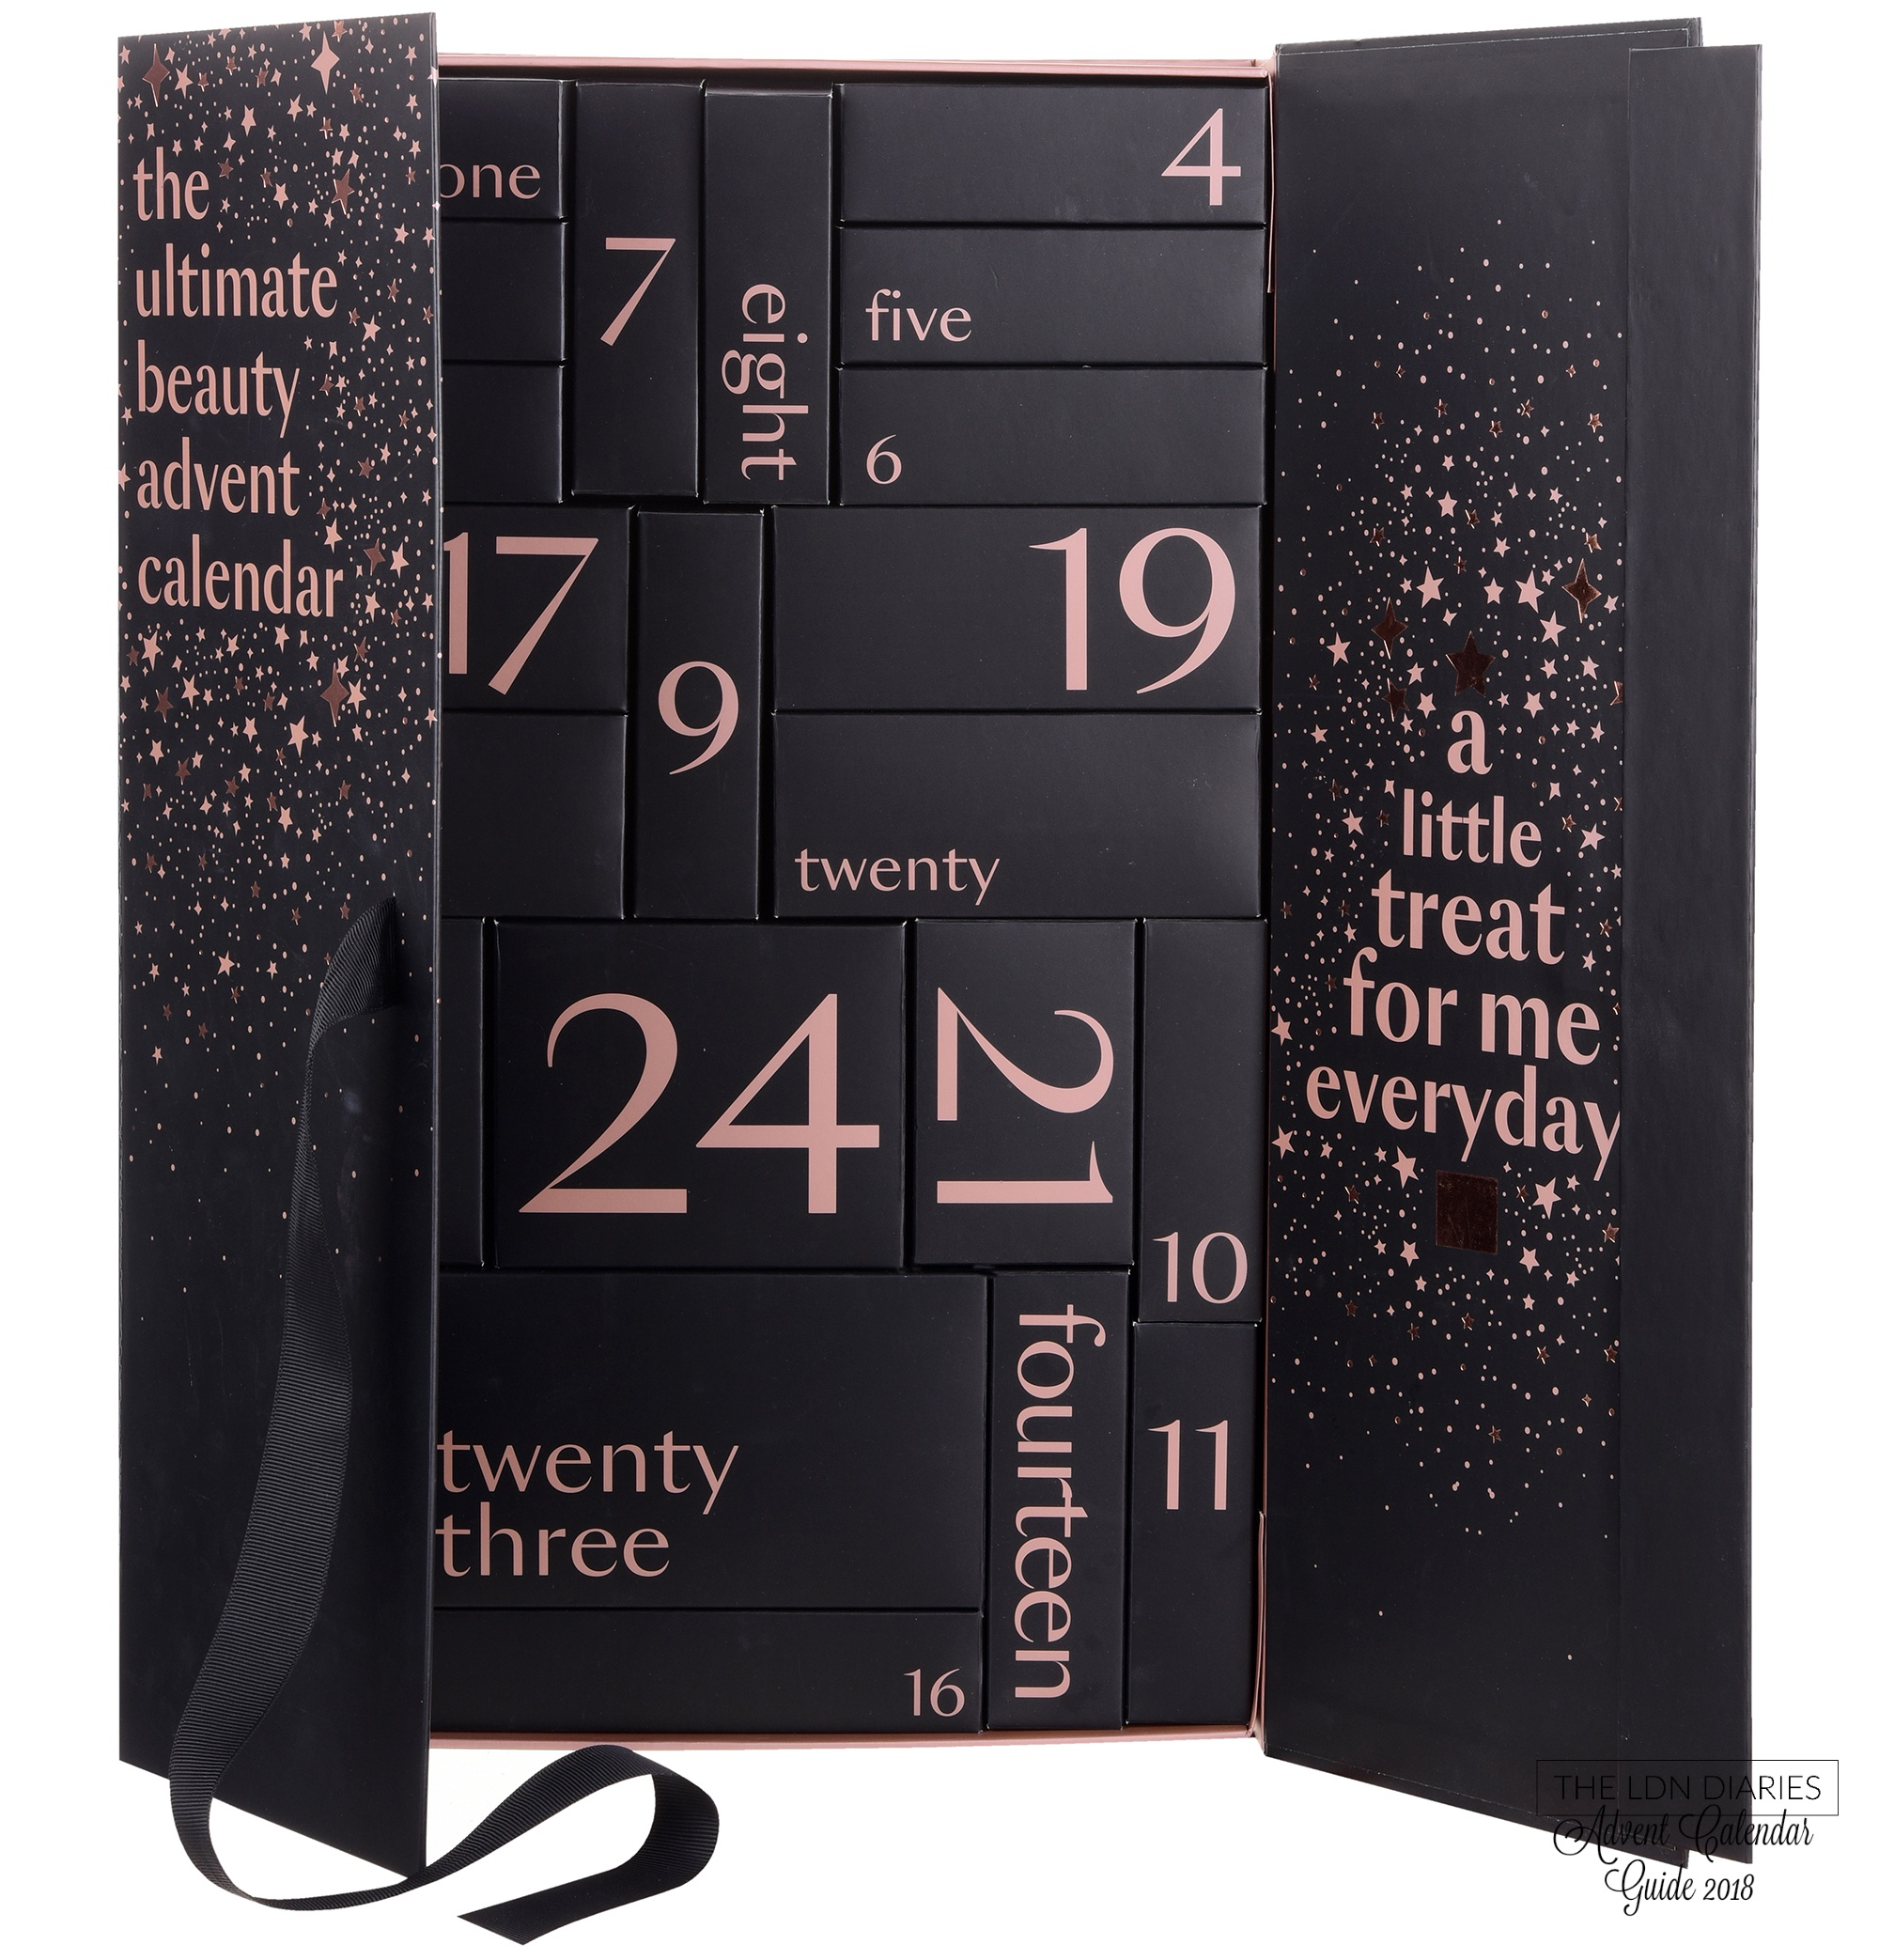 Debenhams ultimate beauty advent calendar - The LDN Diaries